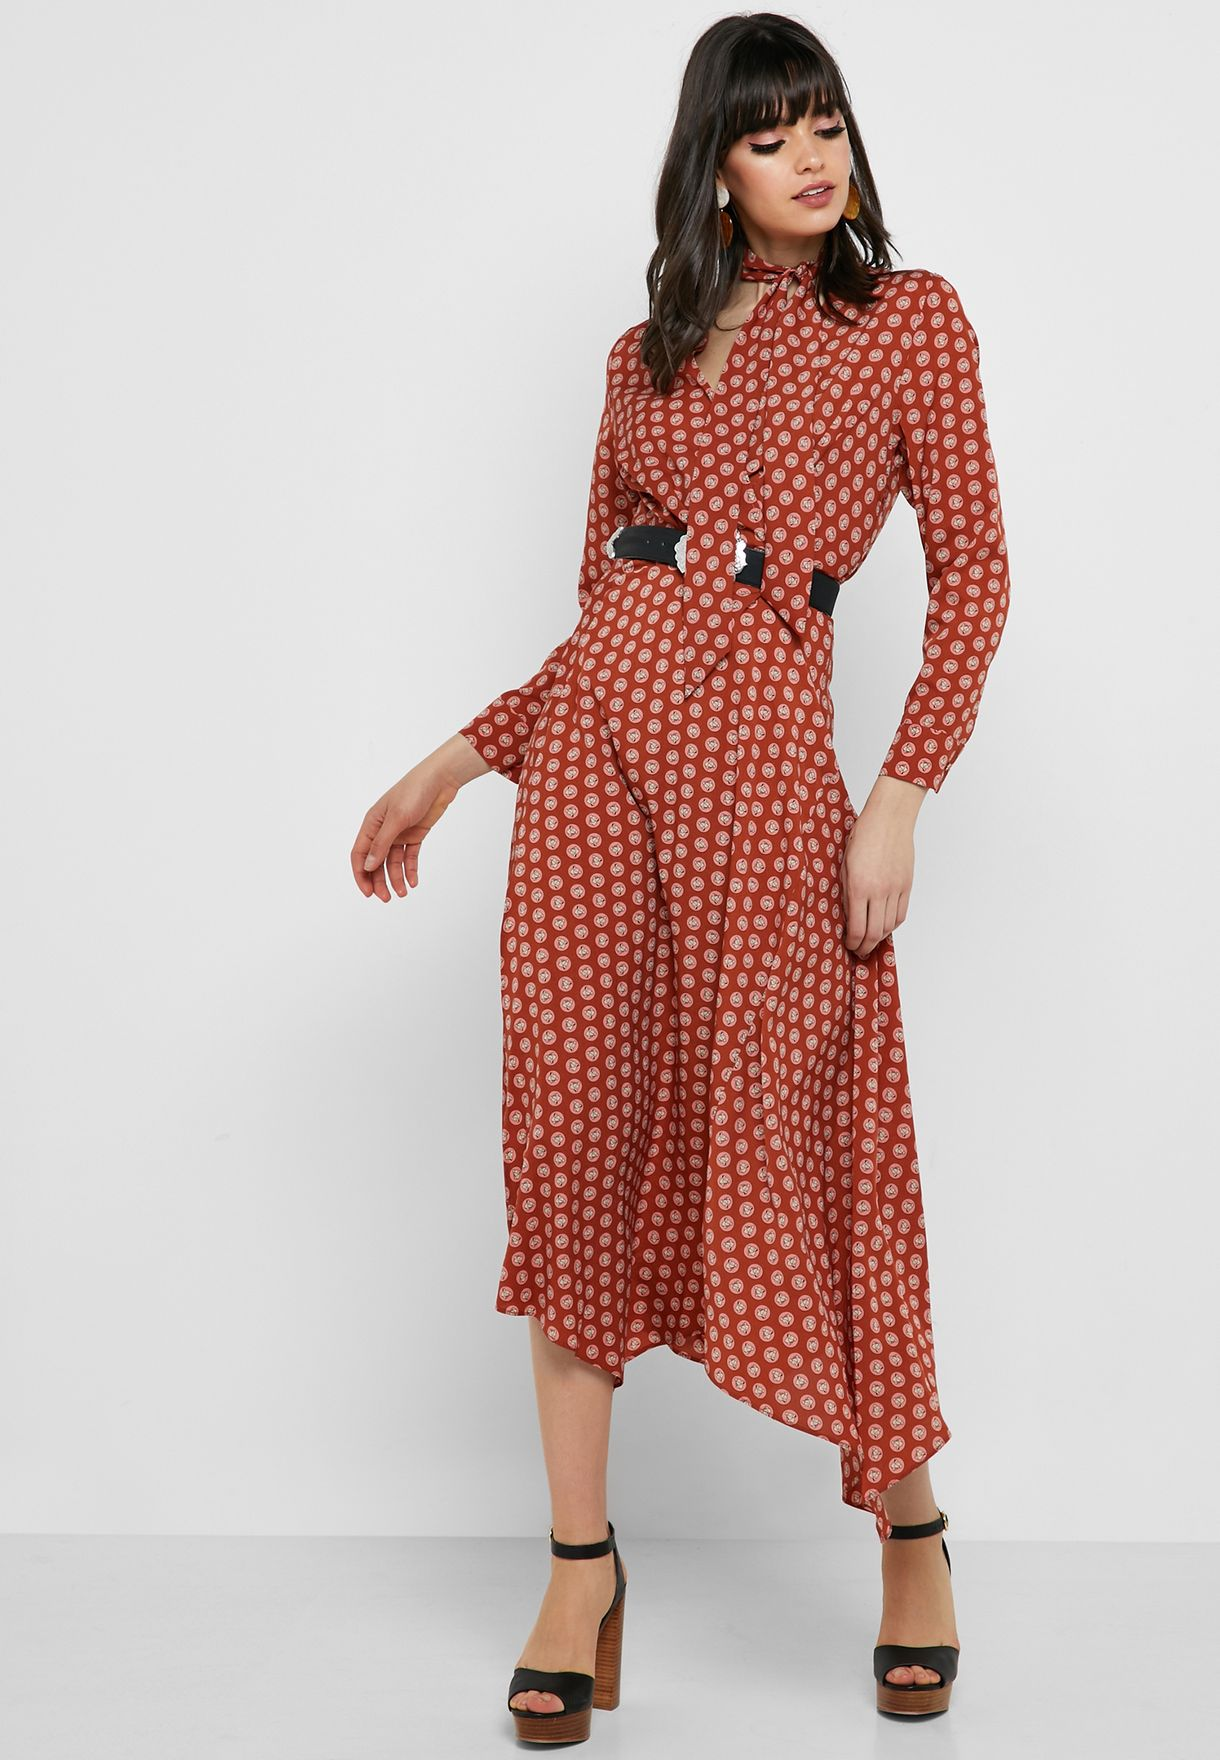 Tie Neck Polka Dot Dress